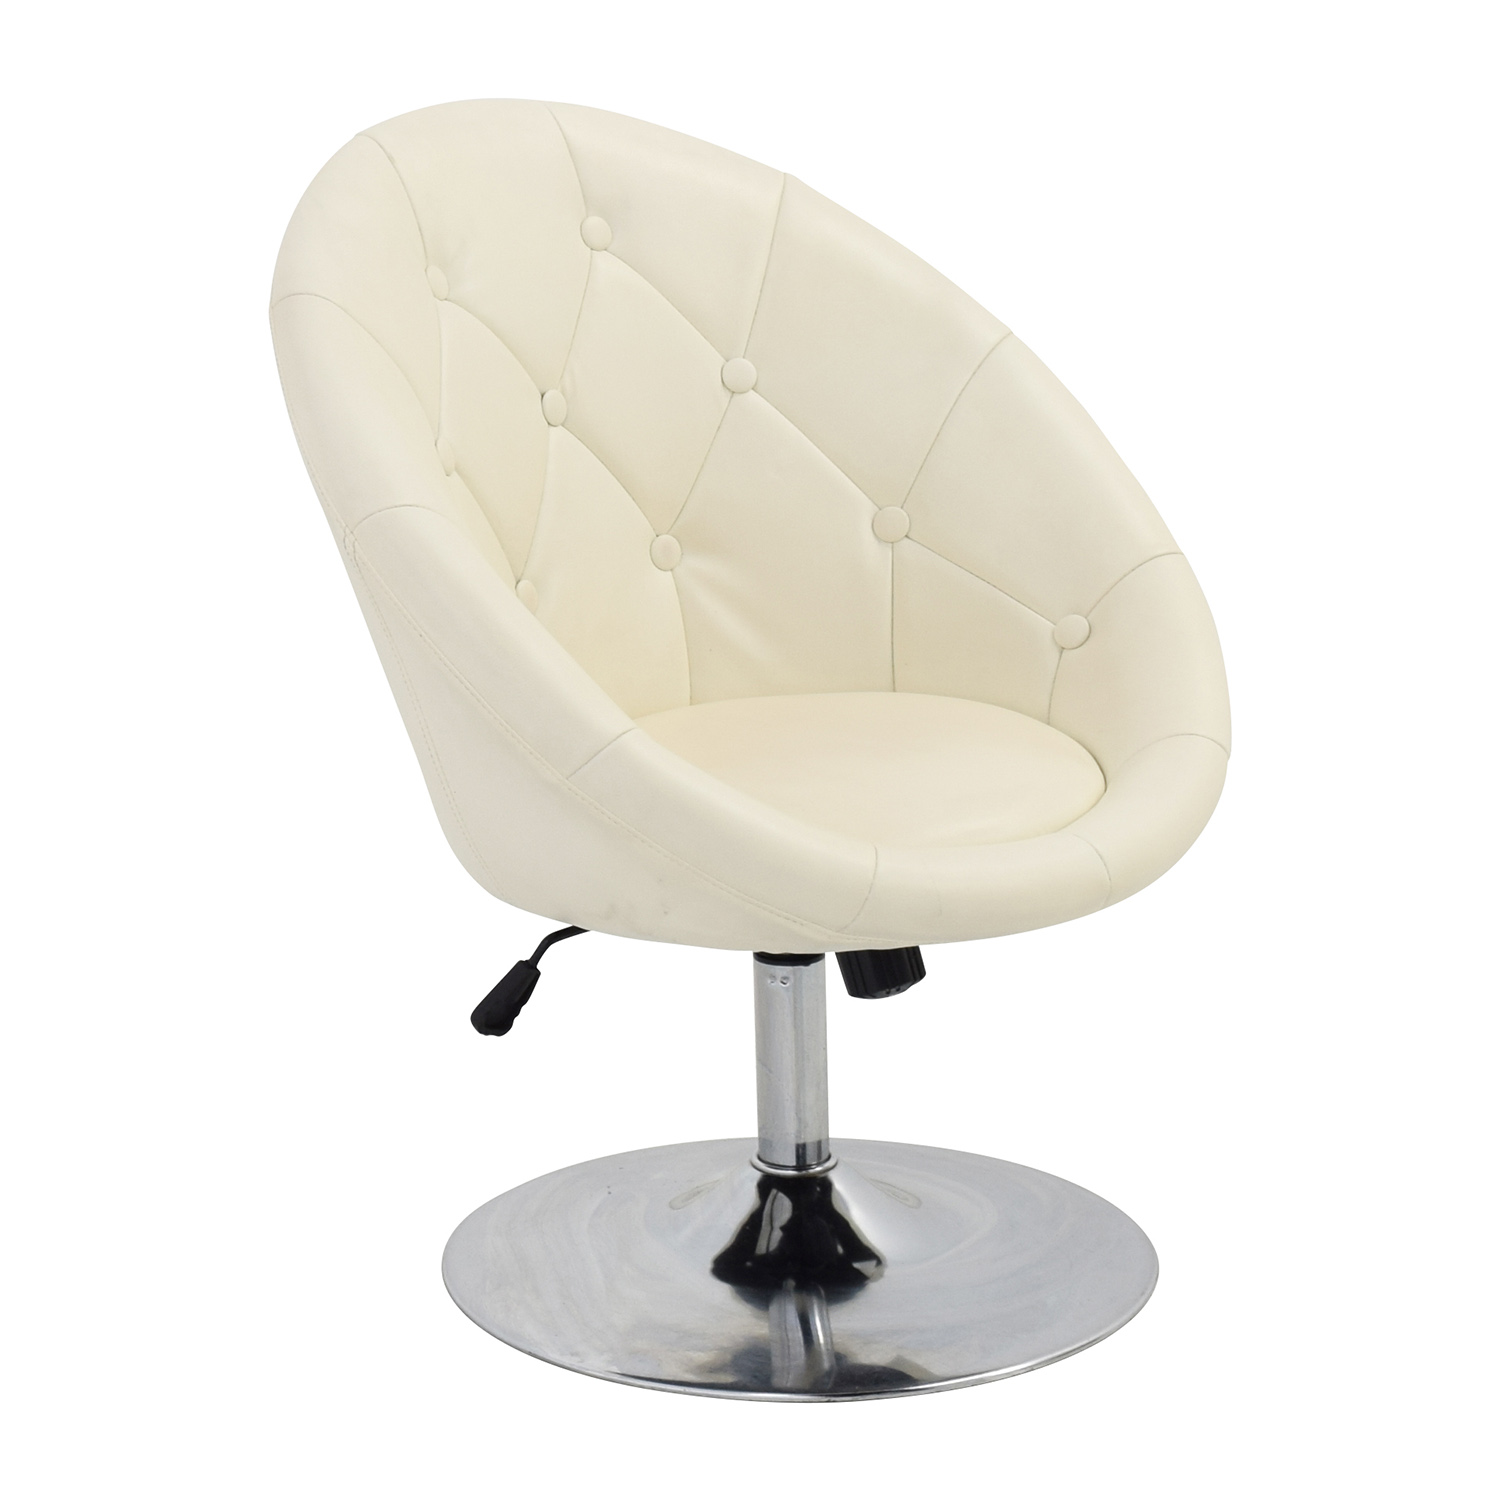 Pleasing 59 Off Coaster Fine Furniture Coaster Tufted White Leather Swivel Chair Chairs Squirreltailoven Fun Painted Chair Ideas Images Squirreltailovenorg